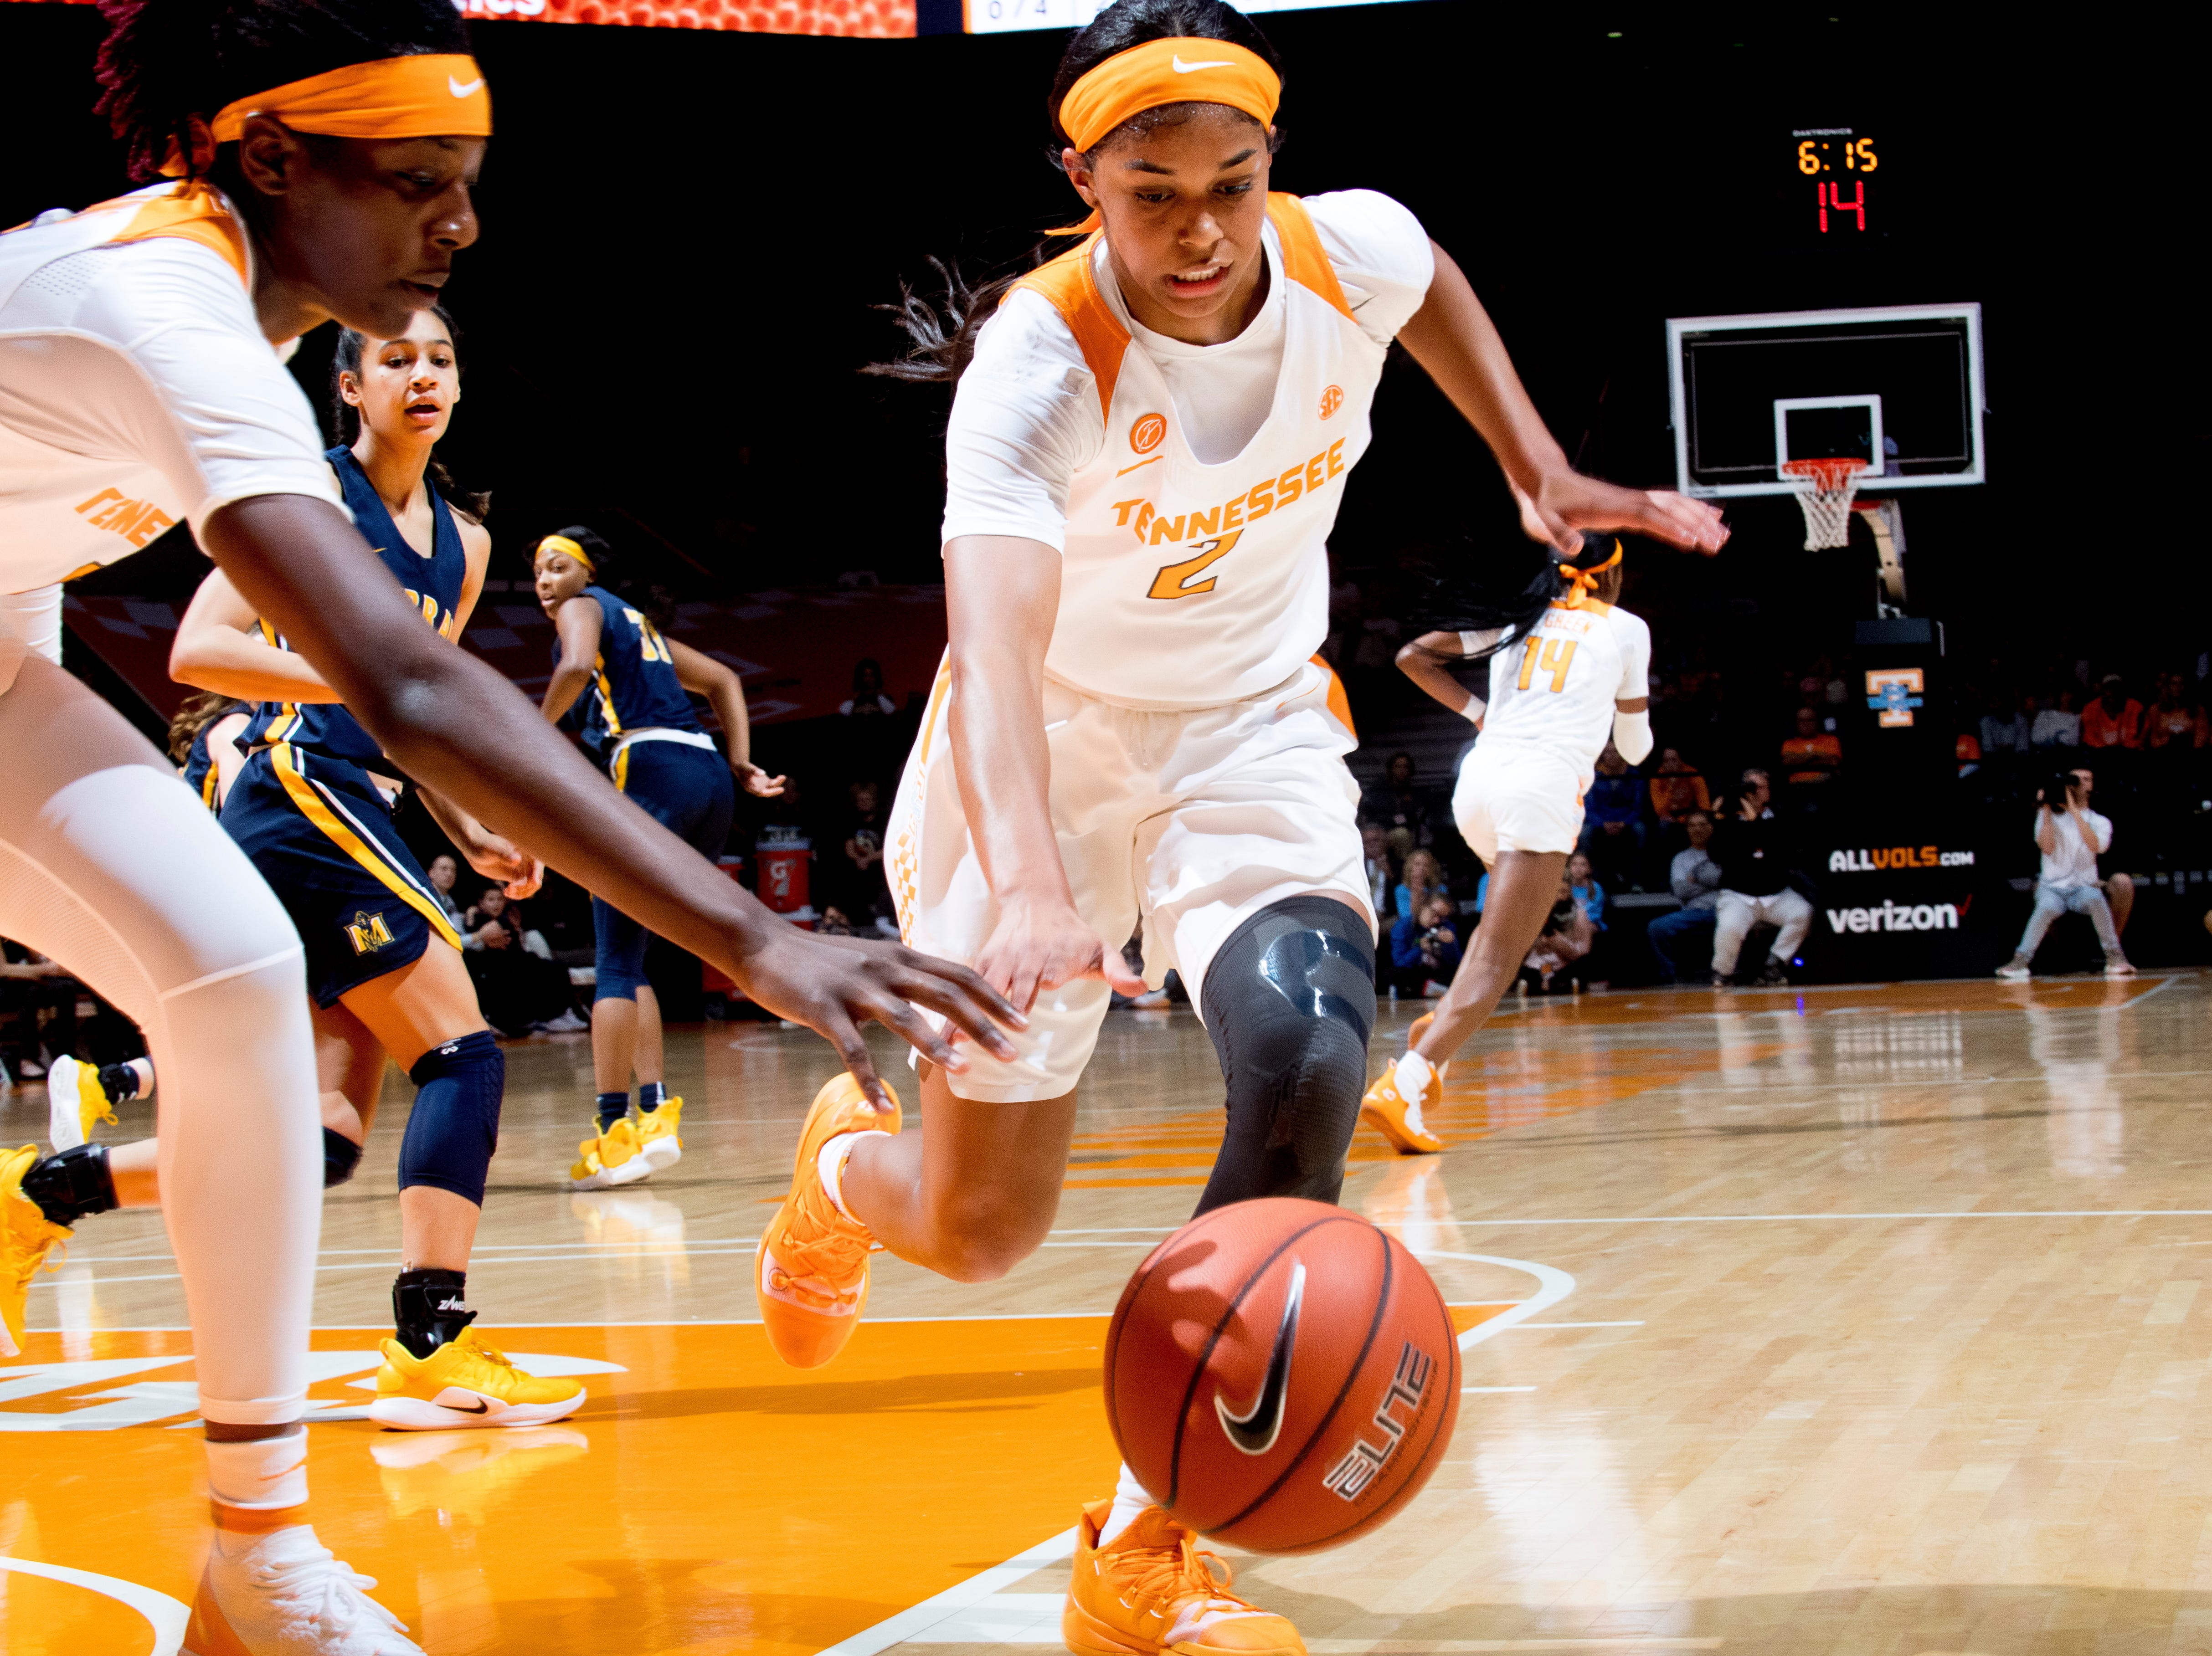 Tennessee guard Evina Westbrook (2) chases a loose ball during a game between the Tennessee Lady Vols and Murray State at Thompson-Boling Arena in Knoxville, Tennessee on Friday, December 28, 2018.